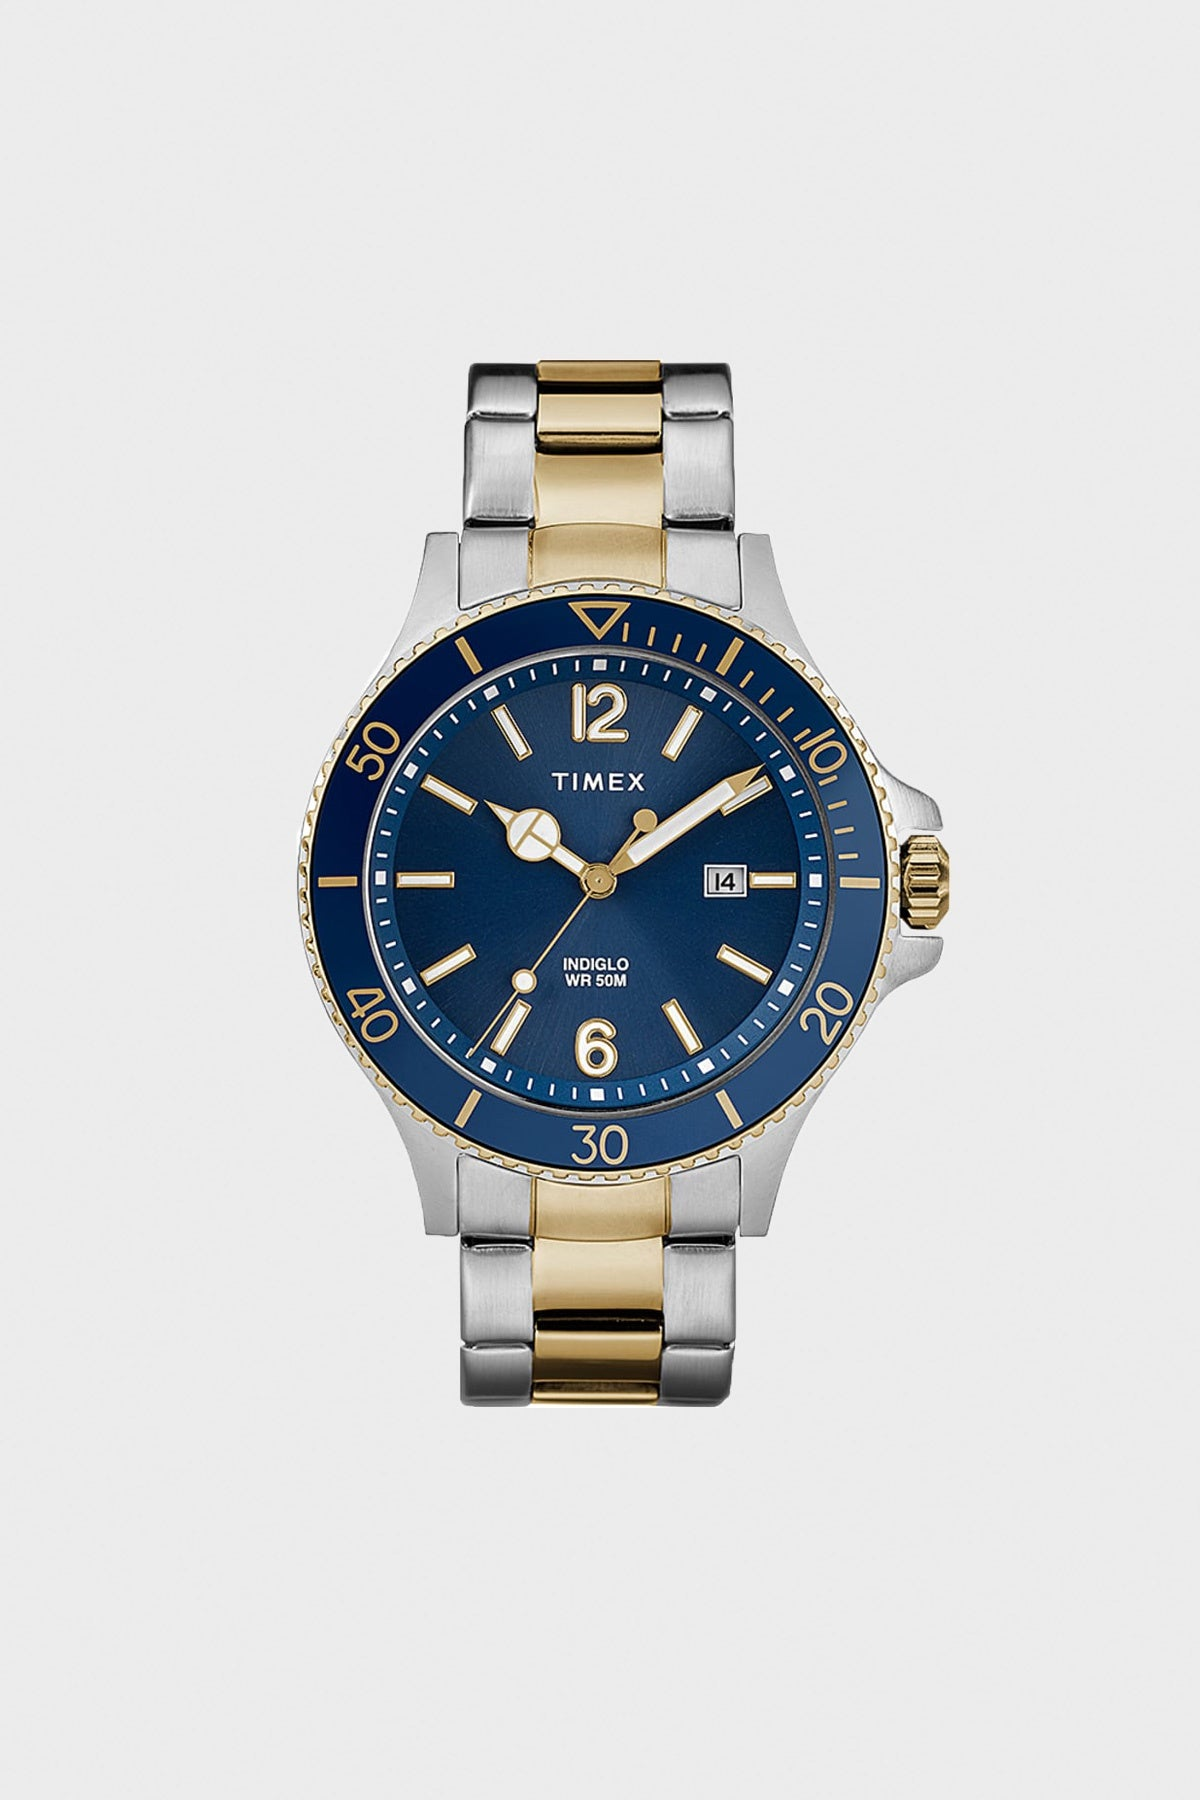 Timex - Harborside Coast 43mm - Two Tone - Canoe Club